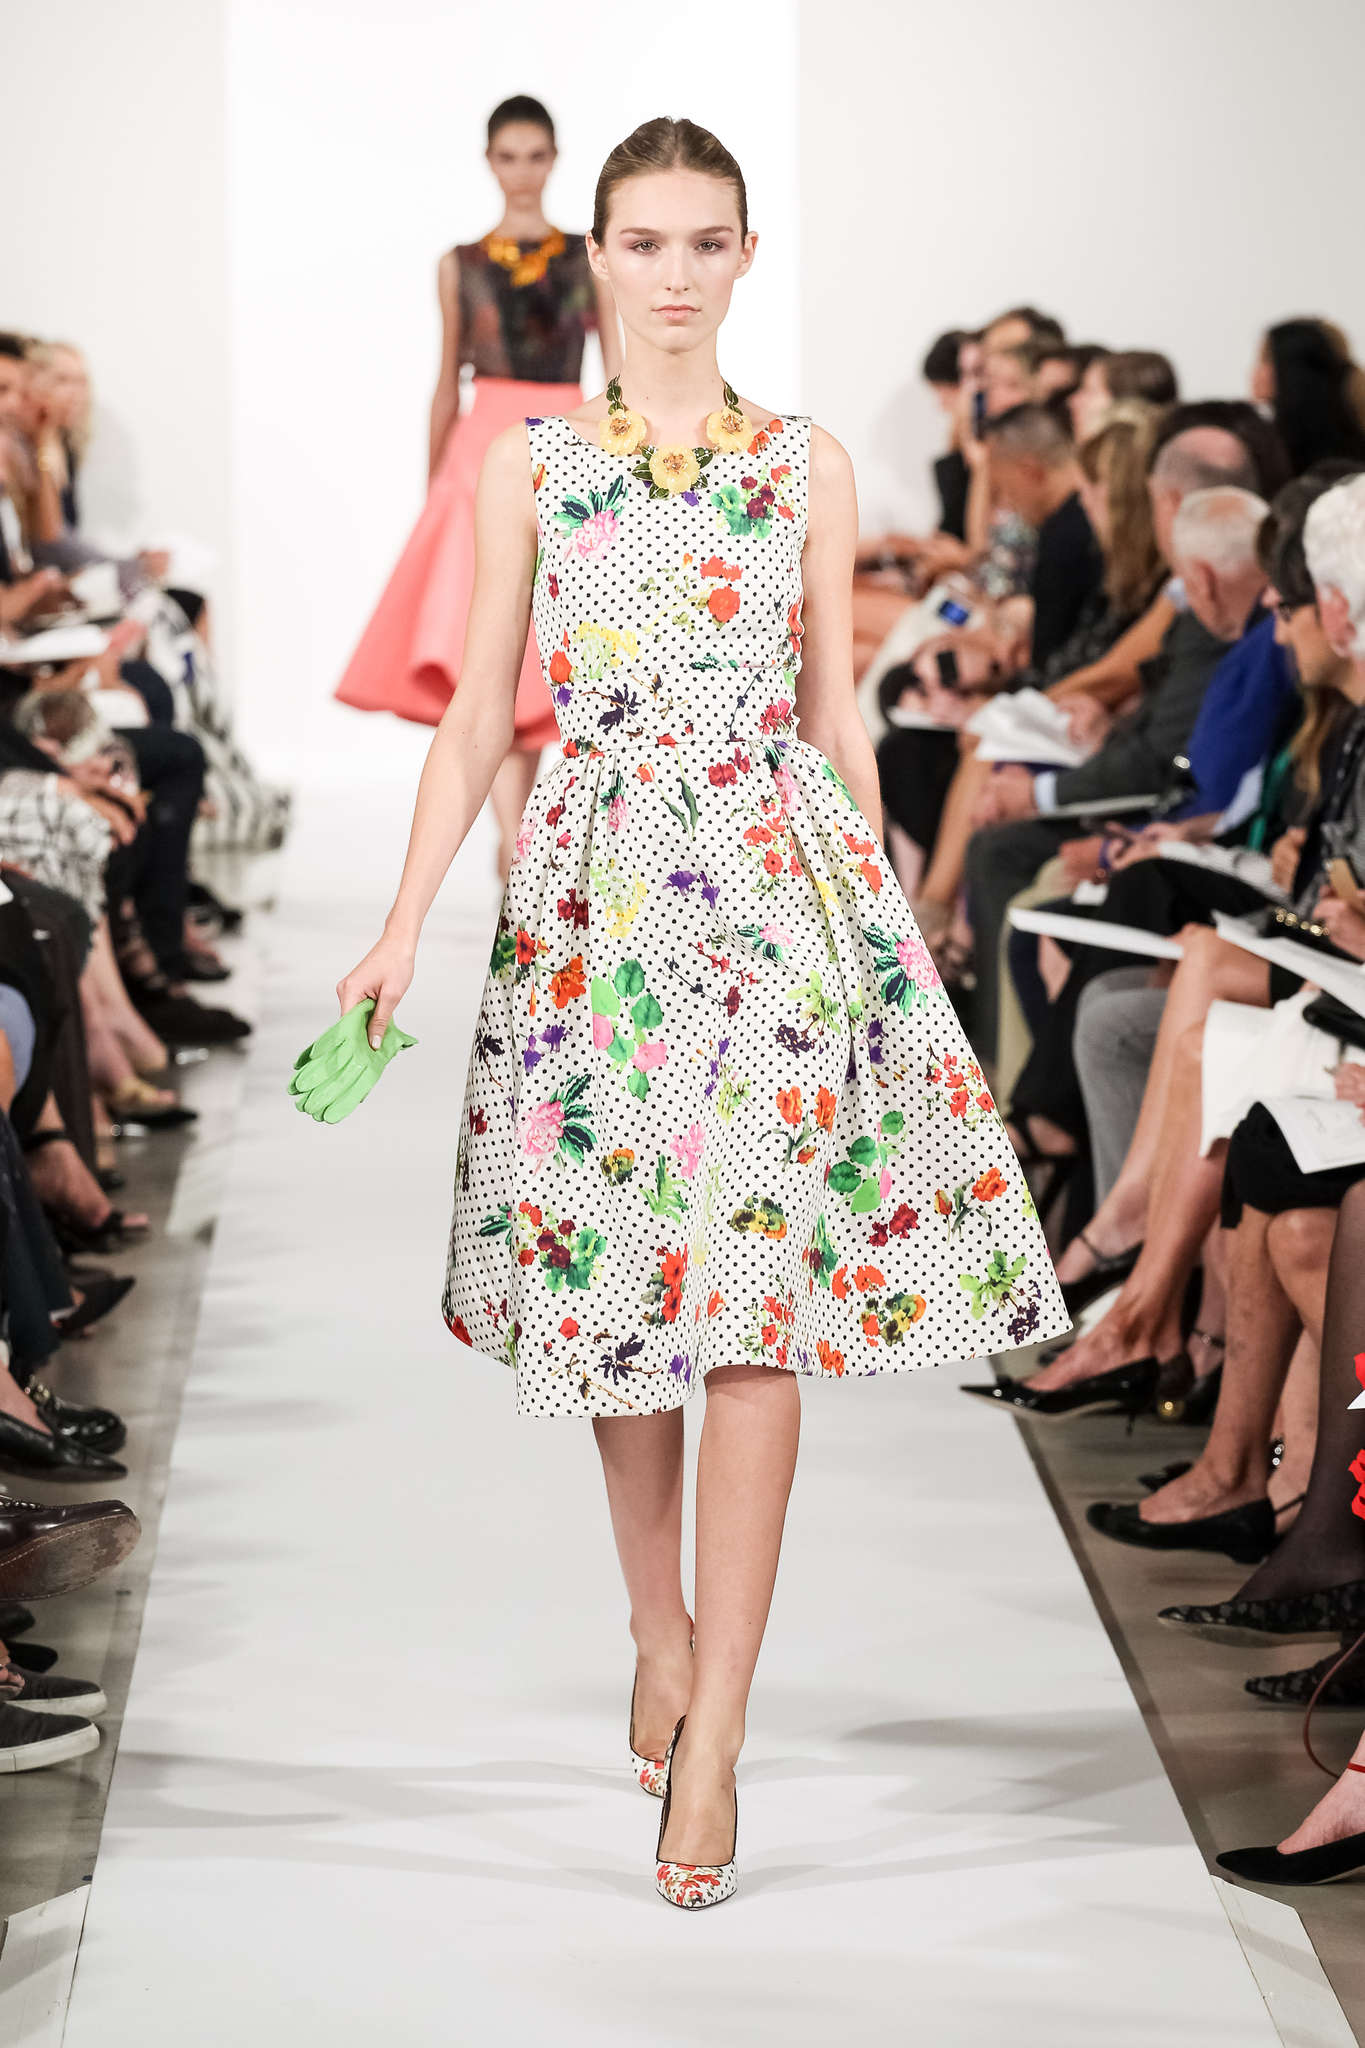 New York Fashion Week Oscar de la Renta fashion show